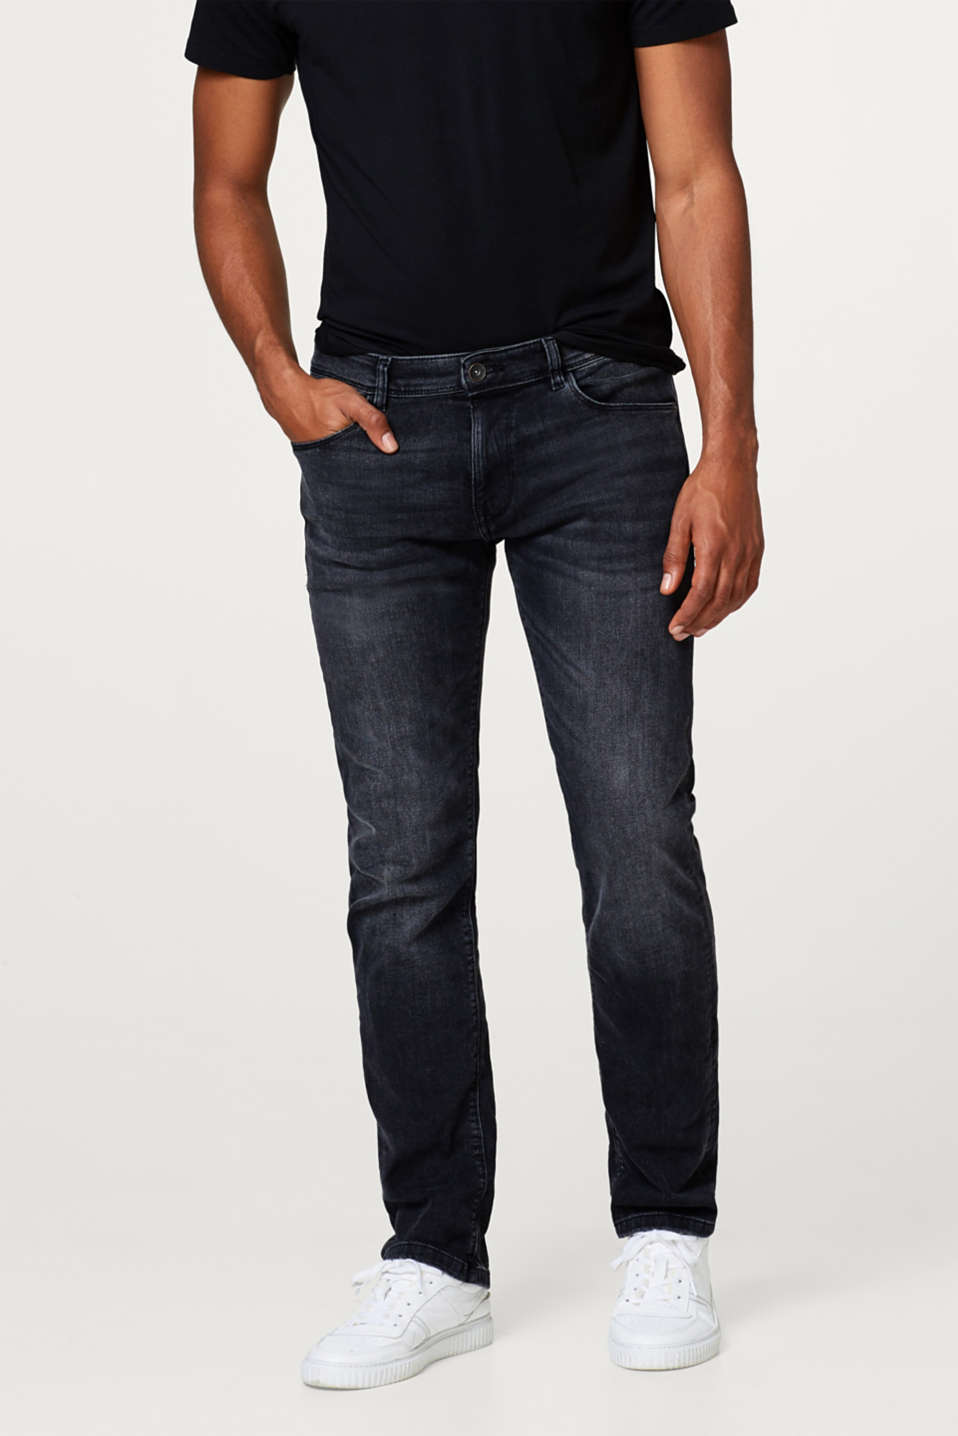 Esprit - Organic Cotton-Jeans mit Super-Stretch